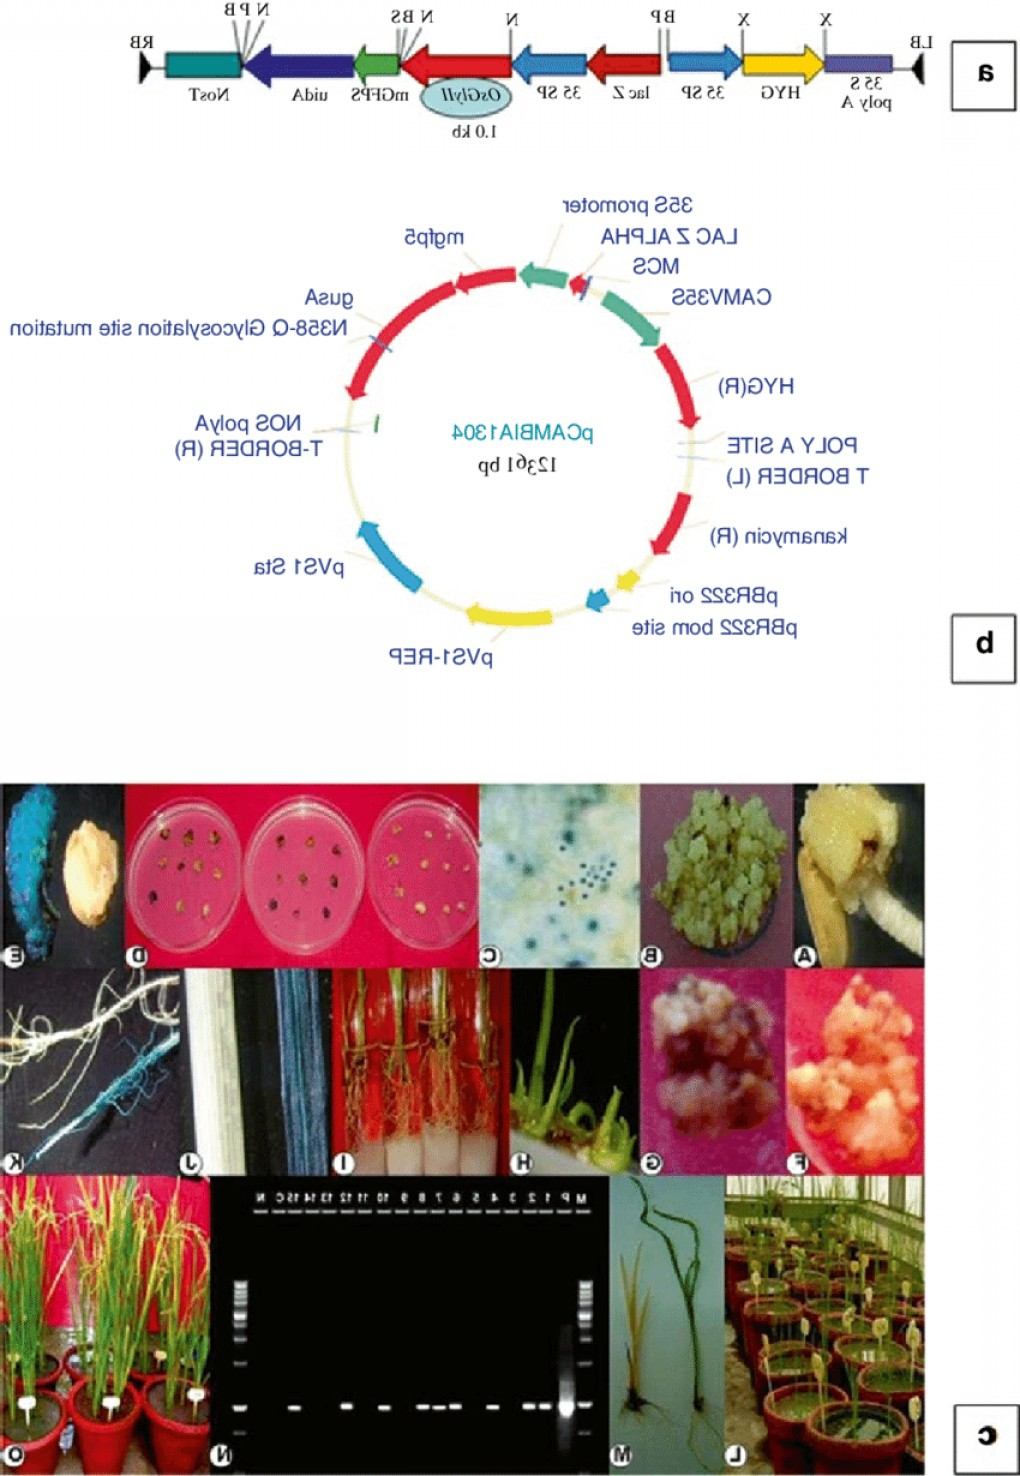 Vector Plant Transformation: A The Transgene Used In This Study Was Glyoxalase Ii Osglyii From Oryza Sativa Genbankfig